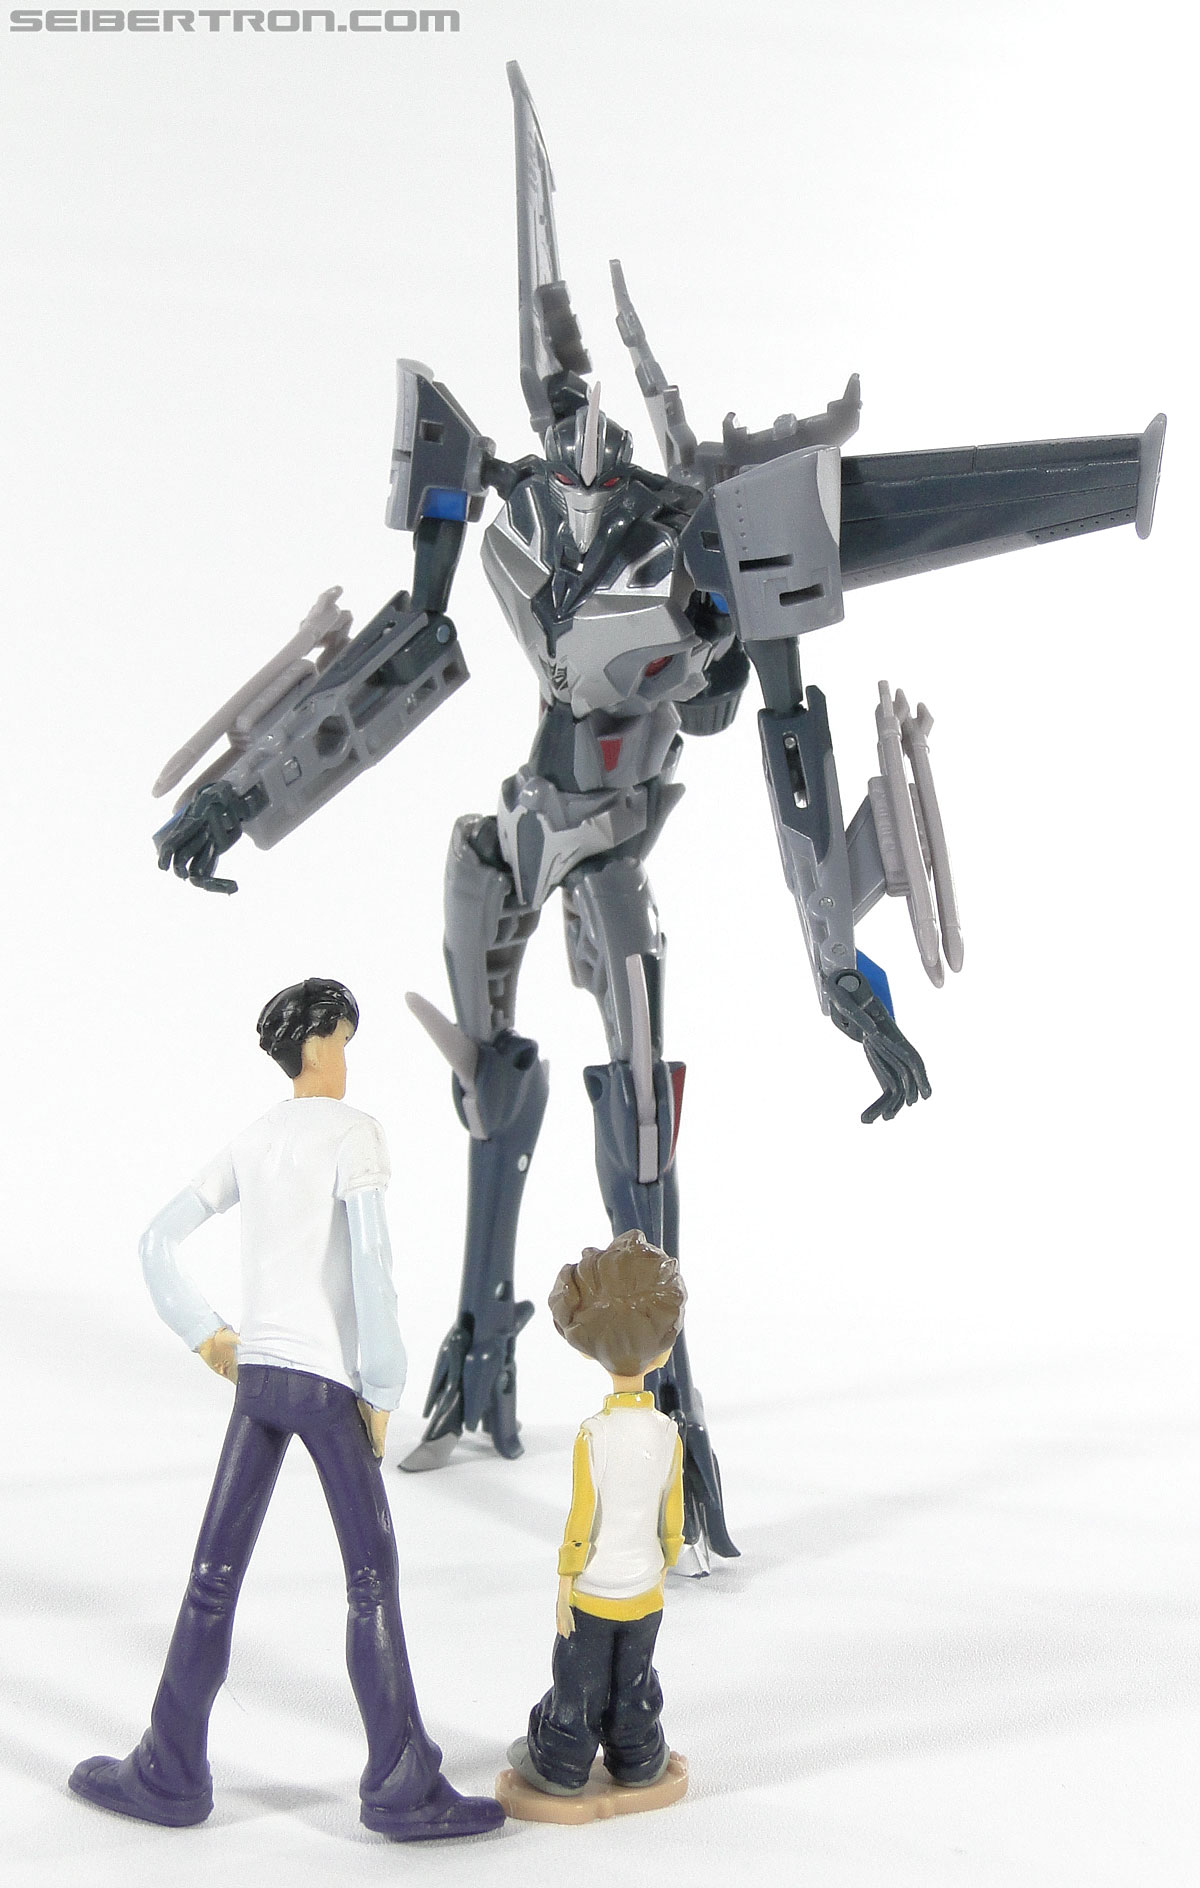 Transformers Prime: First Edition Starscream (Image #108 of 136)